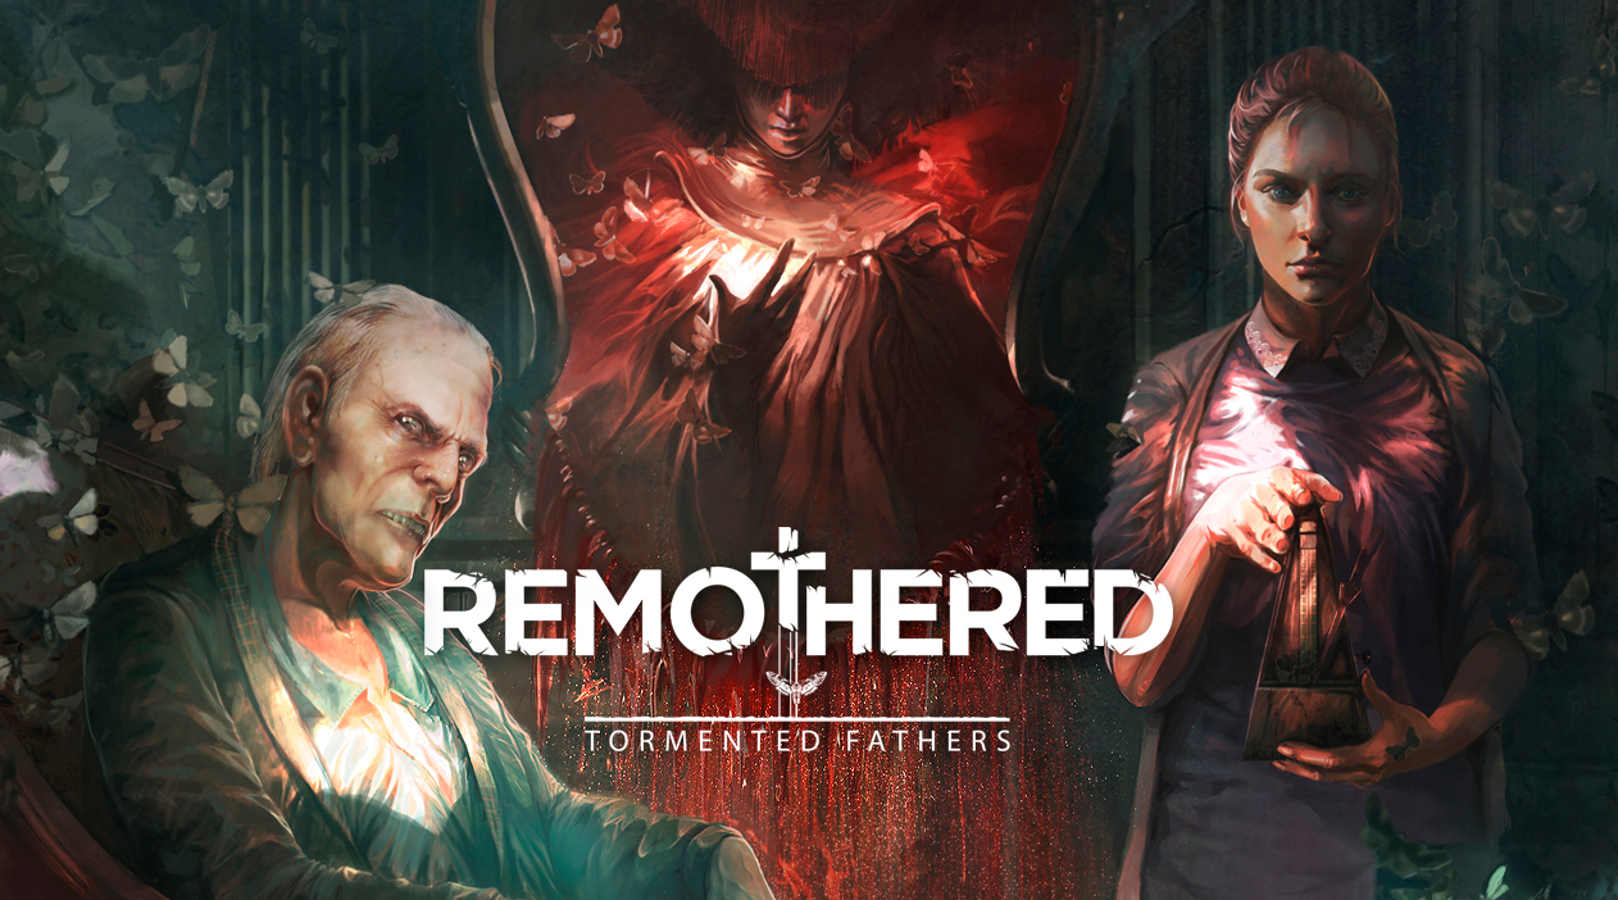 Remothered: Tormented Fathers - Horror Survival Mystery